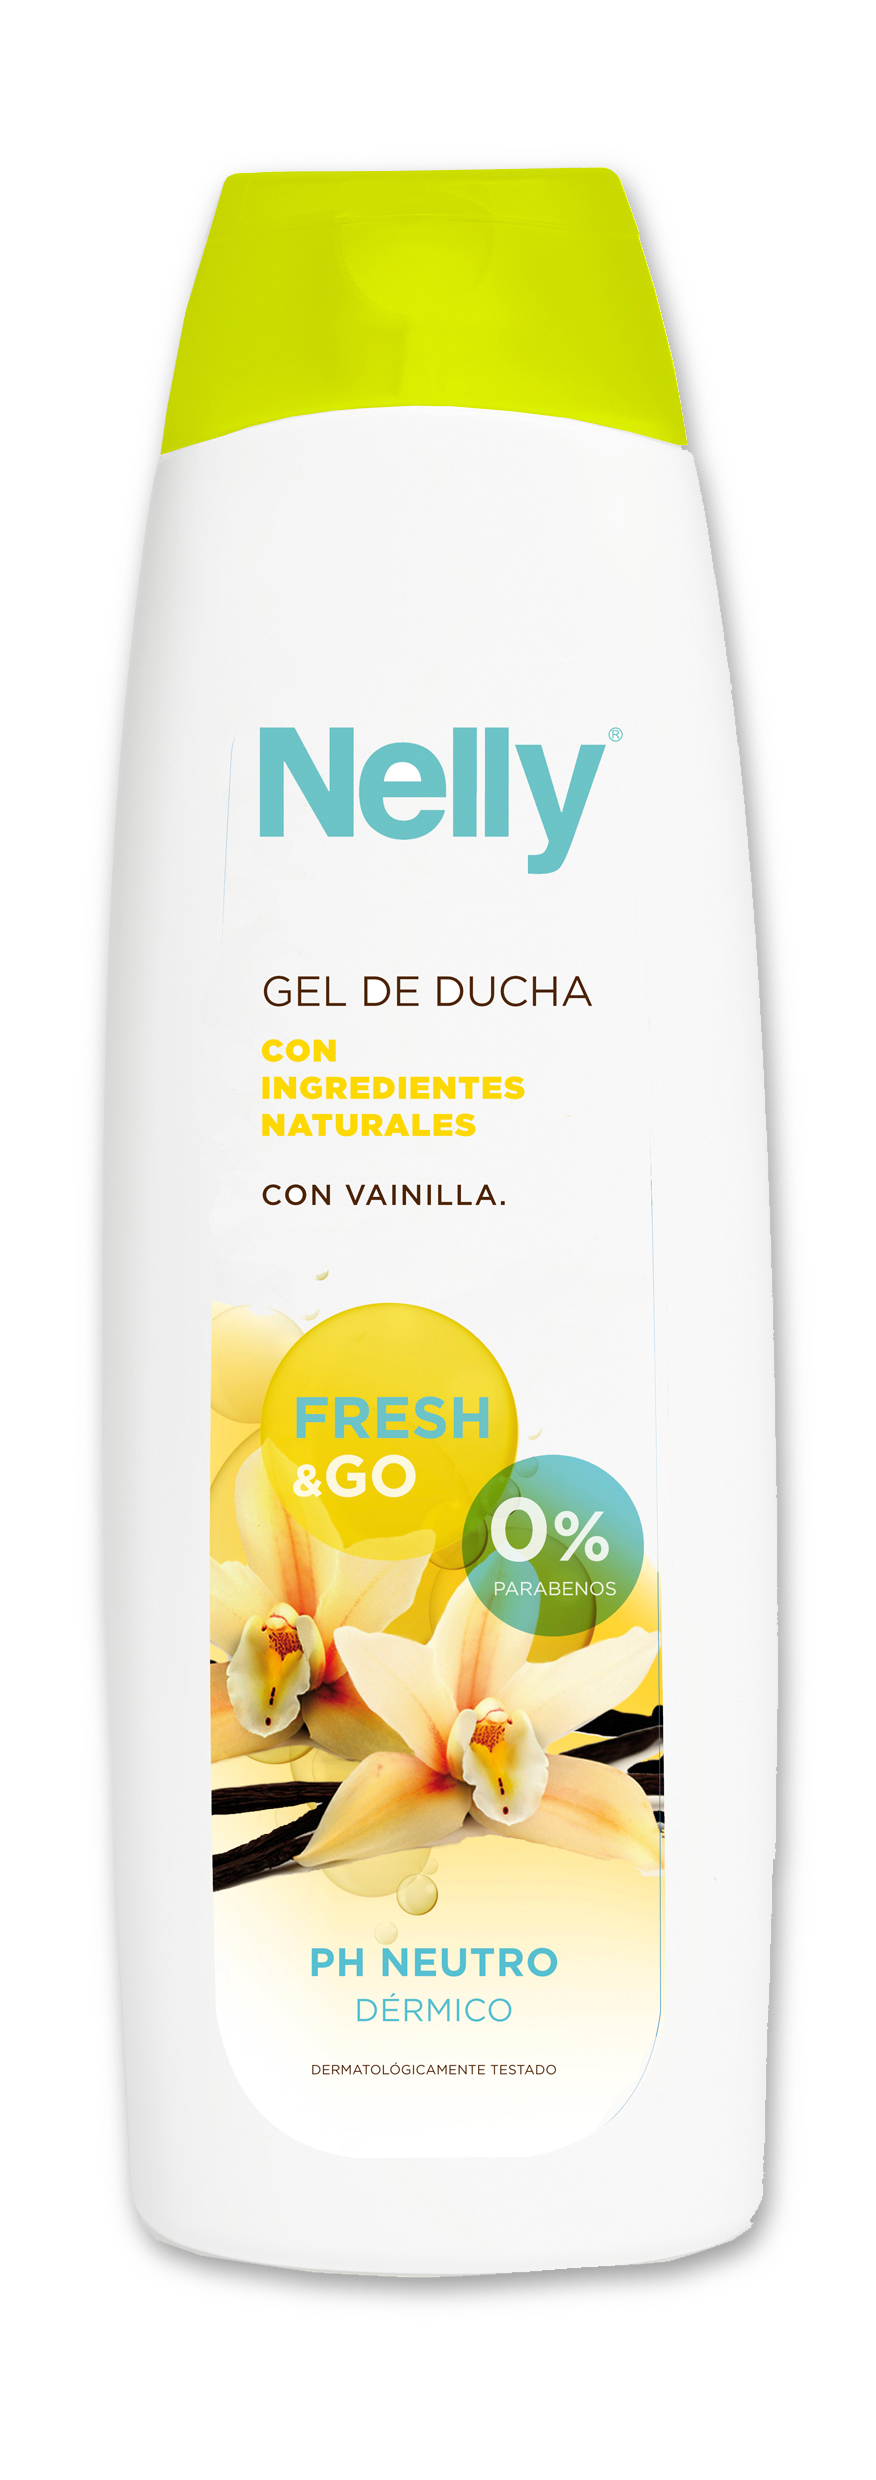 NELLY GEL DE DUCHA VAINILLA 600ML